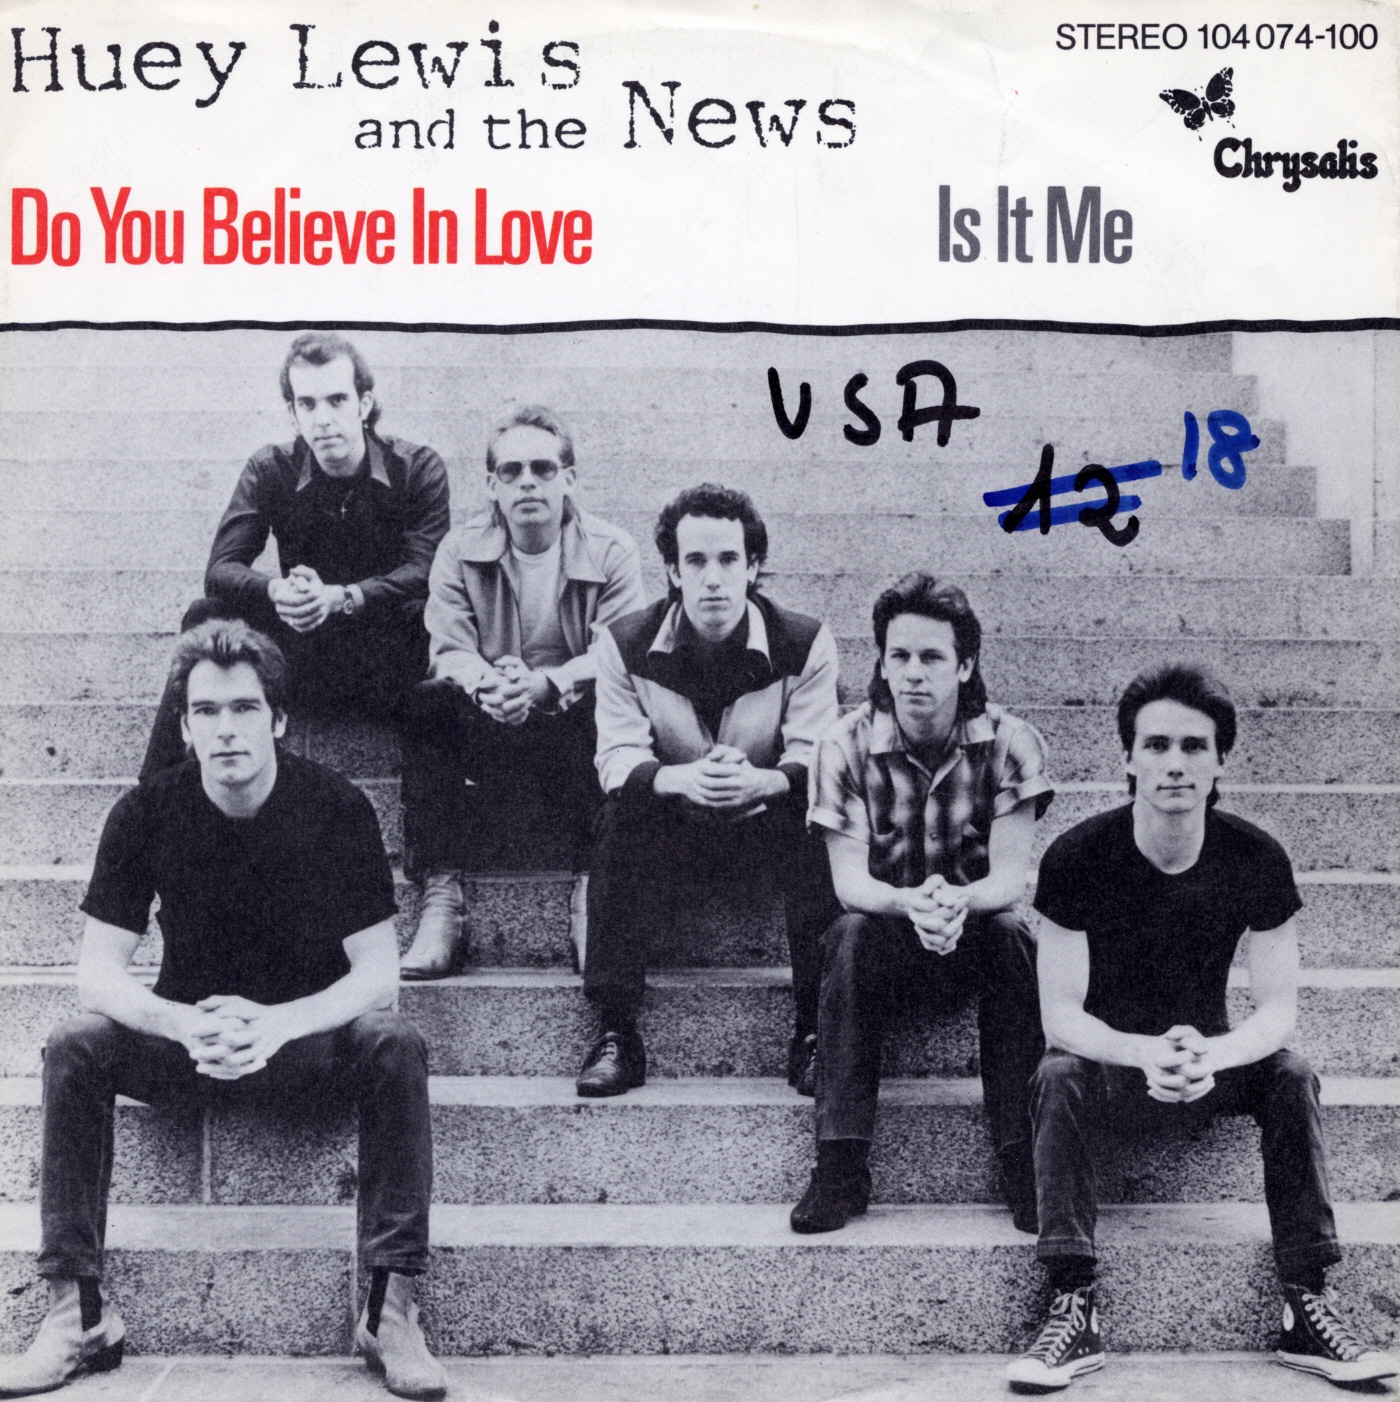 Cover: Do you believe in love, Huey Lewis & The News